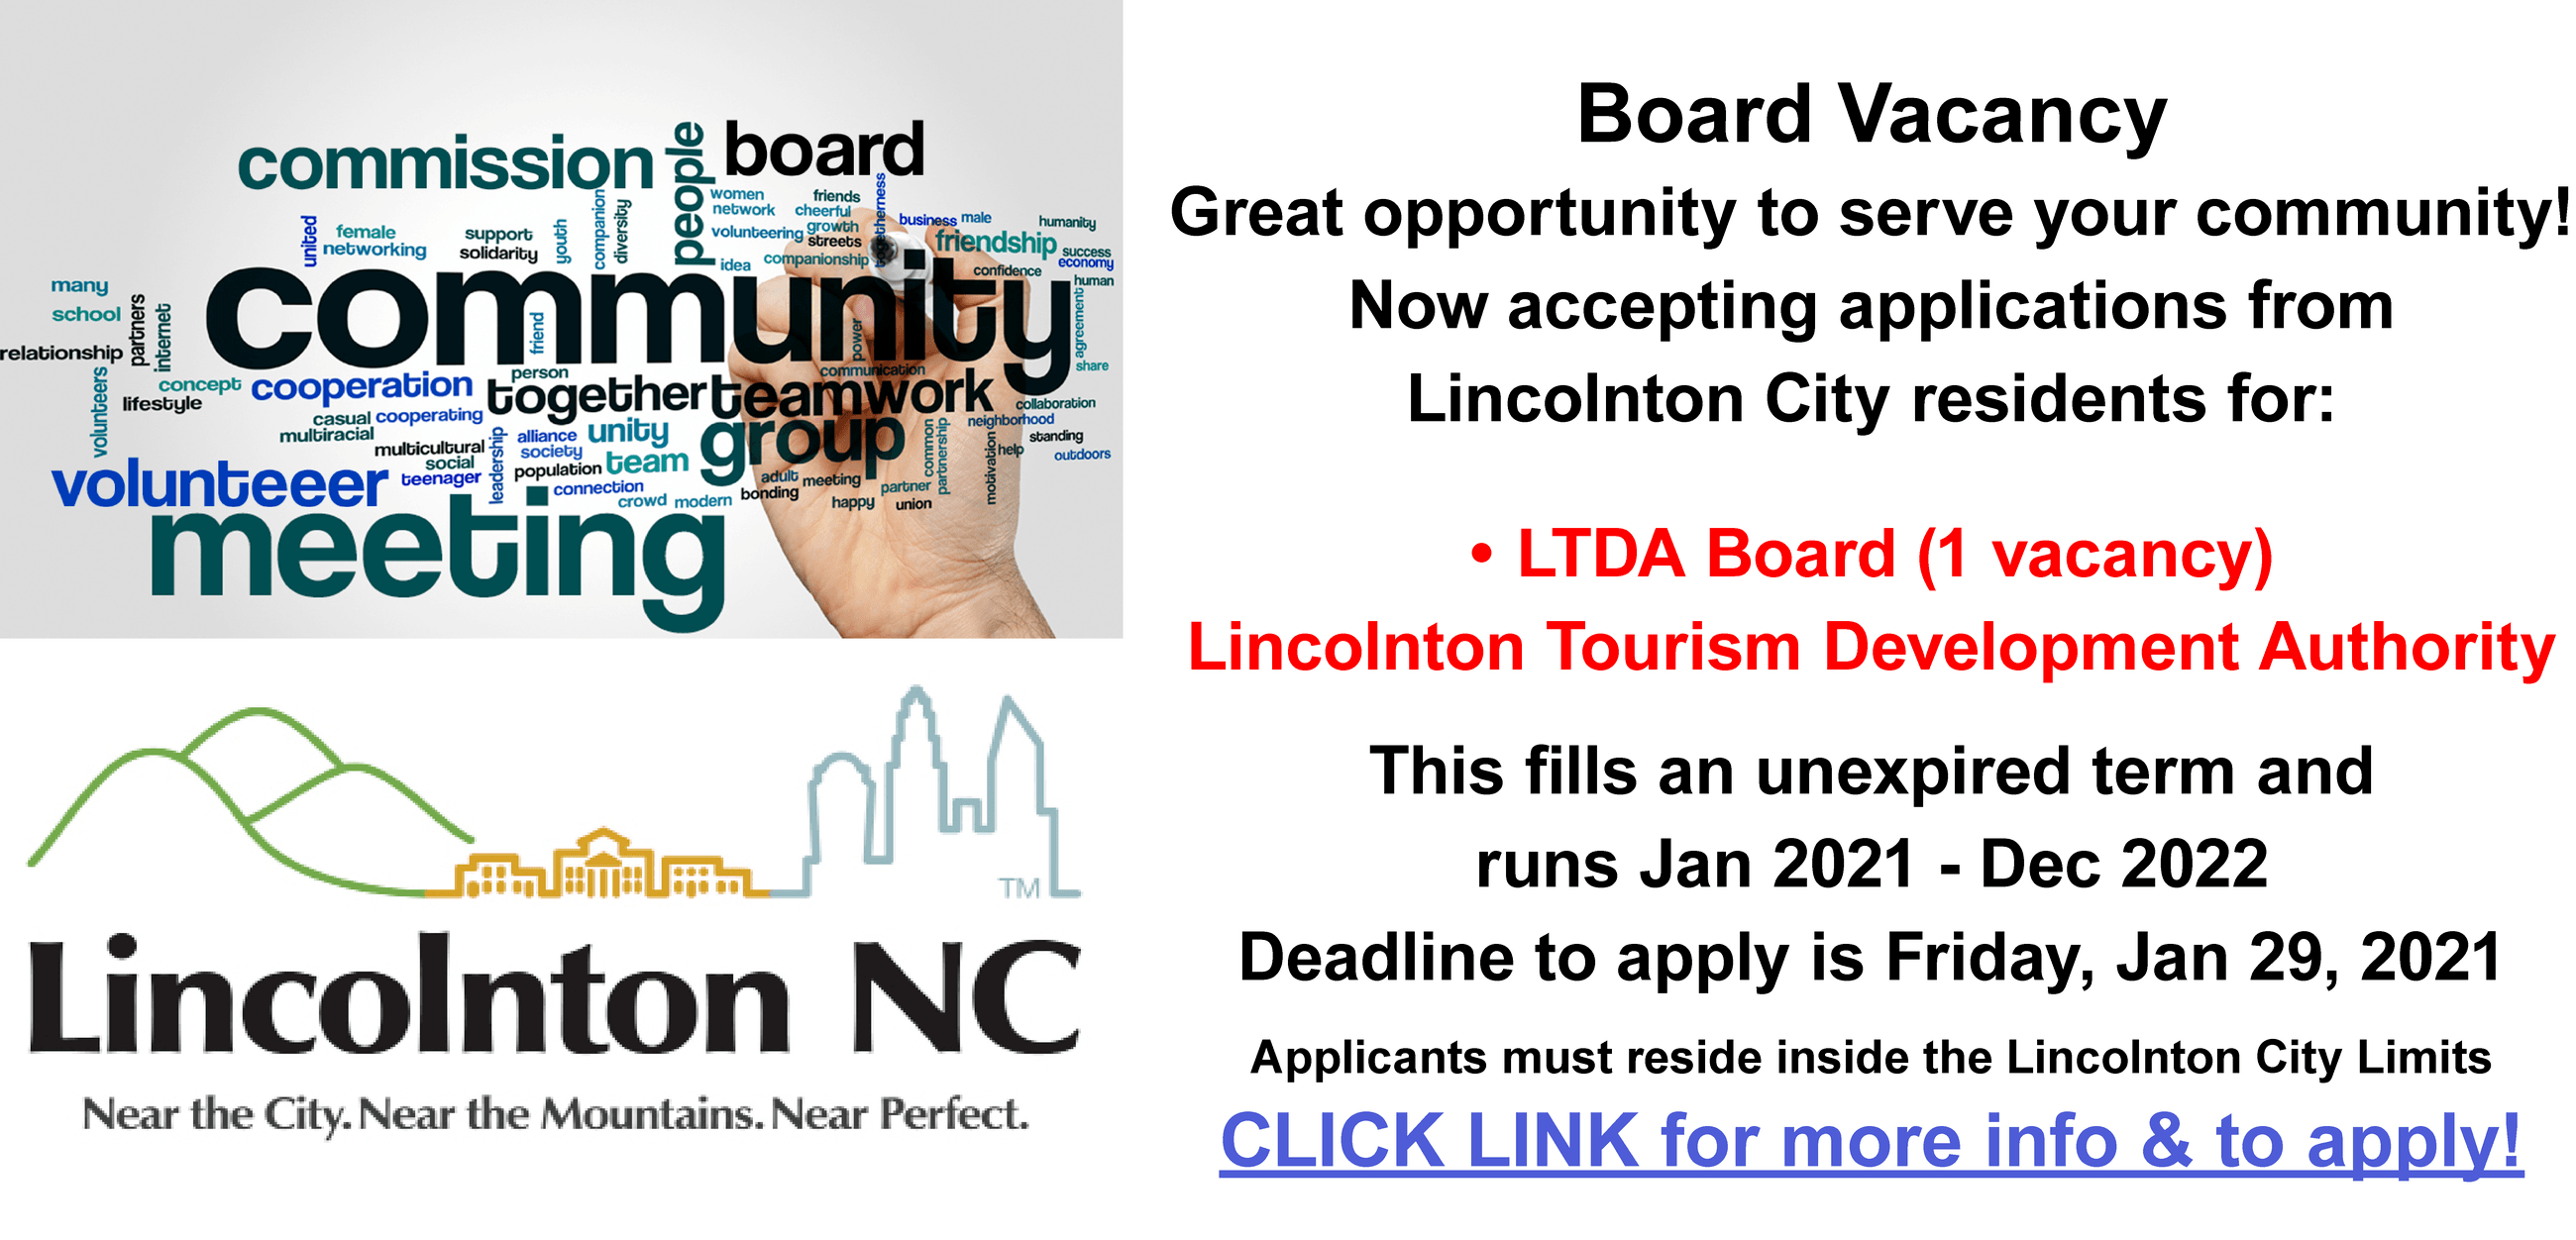 1.20.21 board vacancy - LTDA